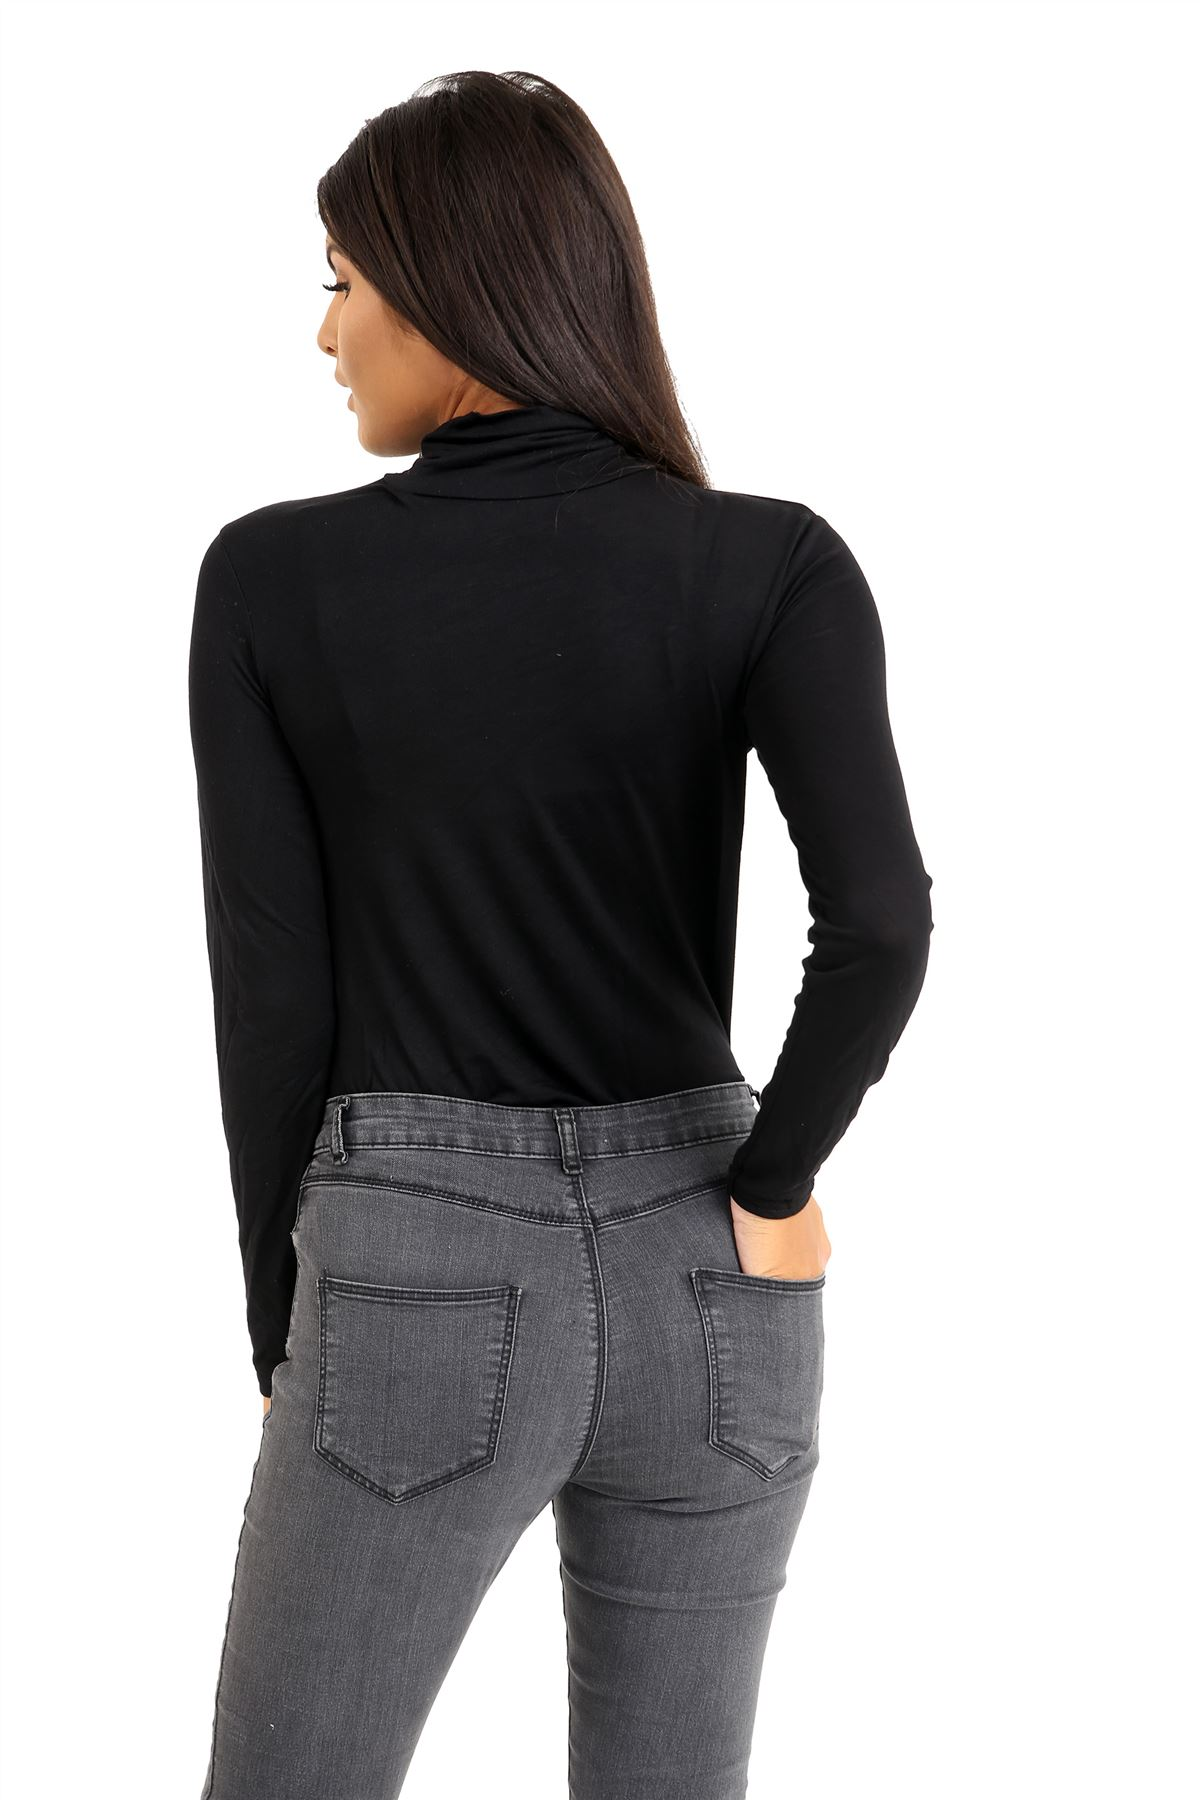 New-Ladies-Long-Sleeve-Plain-Turtle-Polo-Roll-Neck-Stretch-Jumper-T-Shirt-TeeTop thumbnail 13